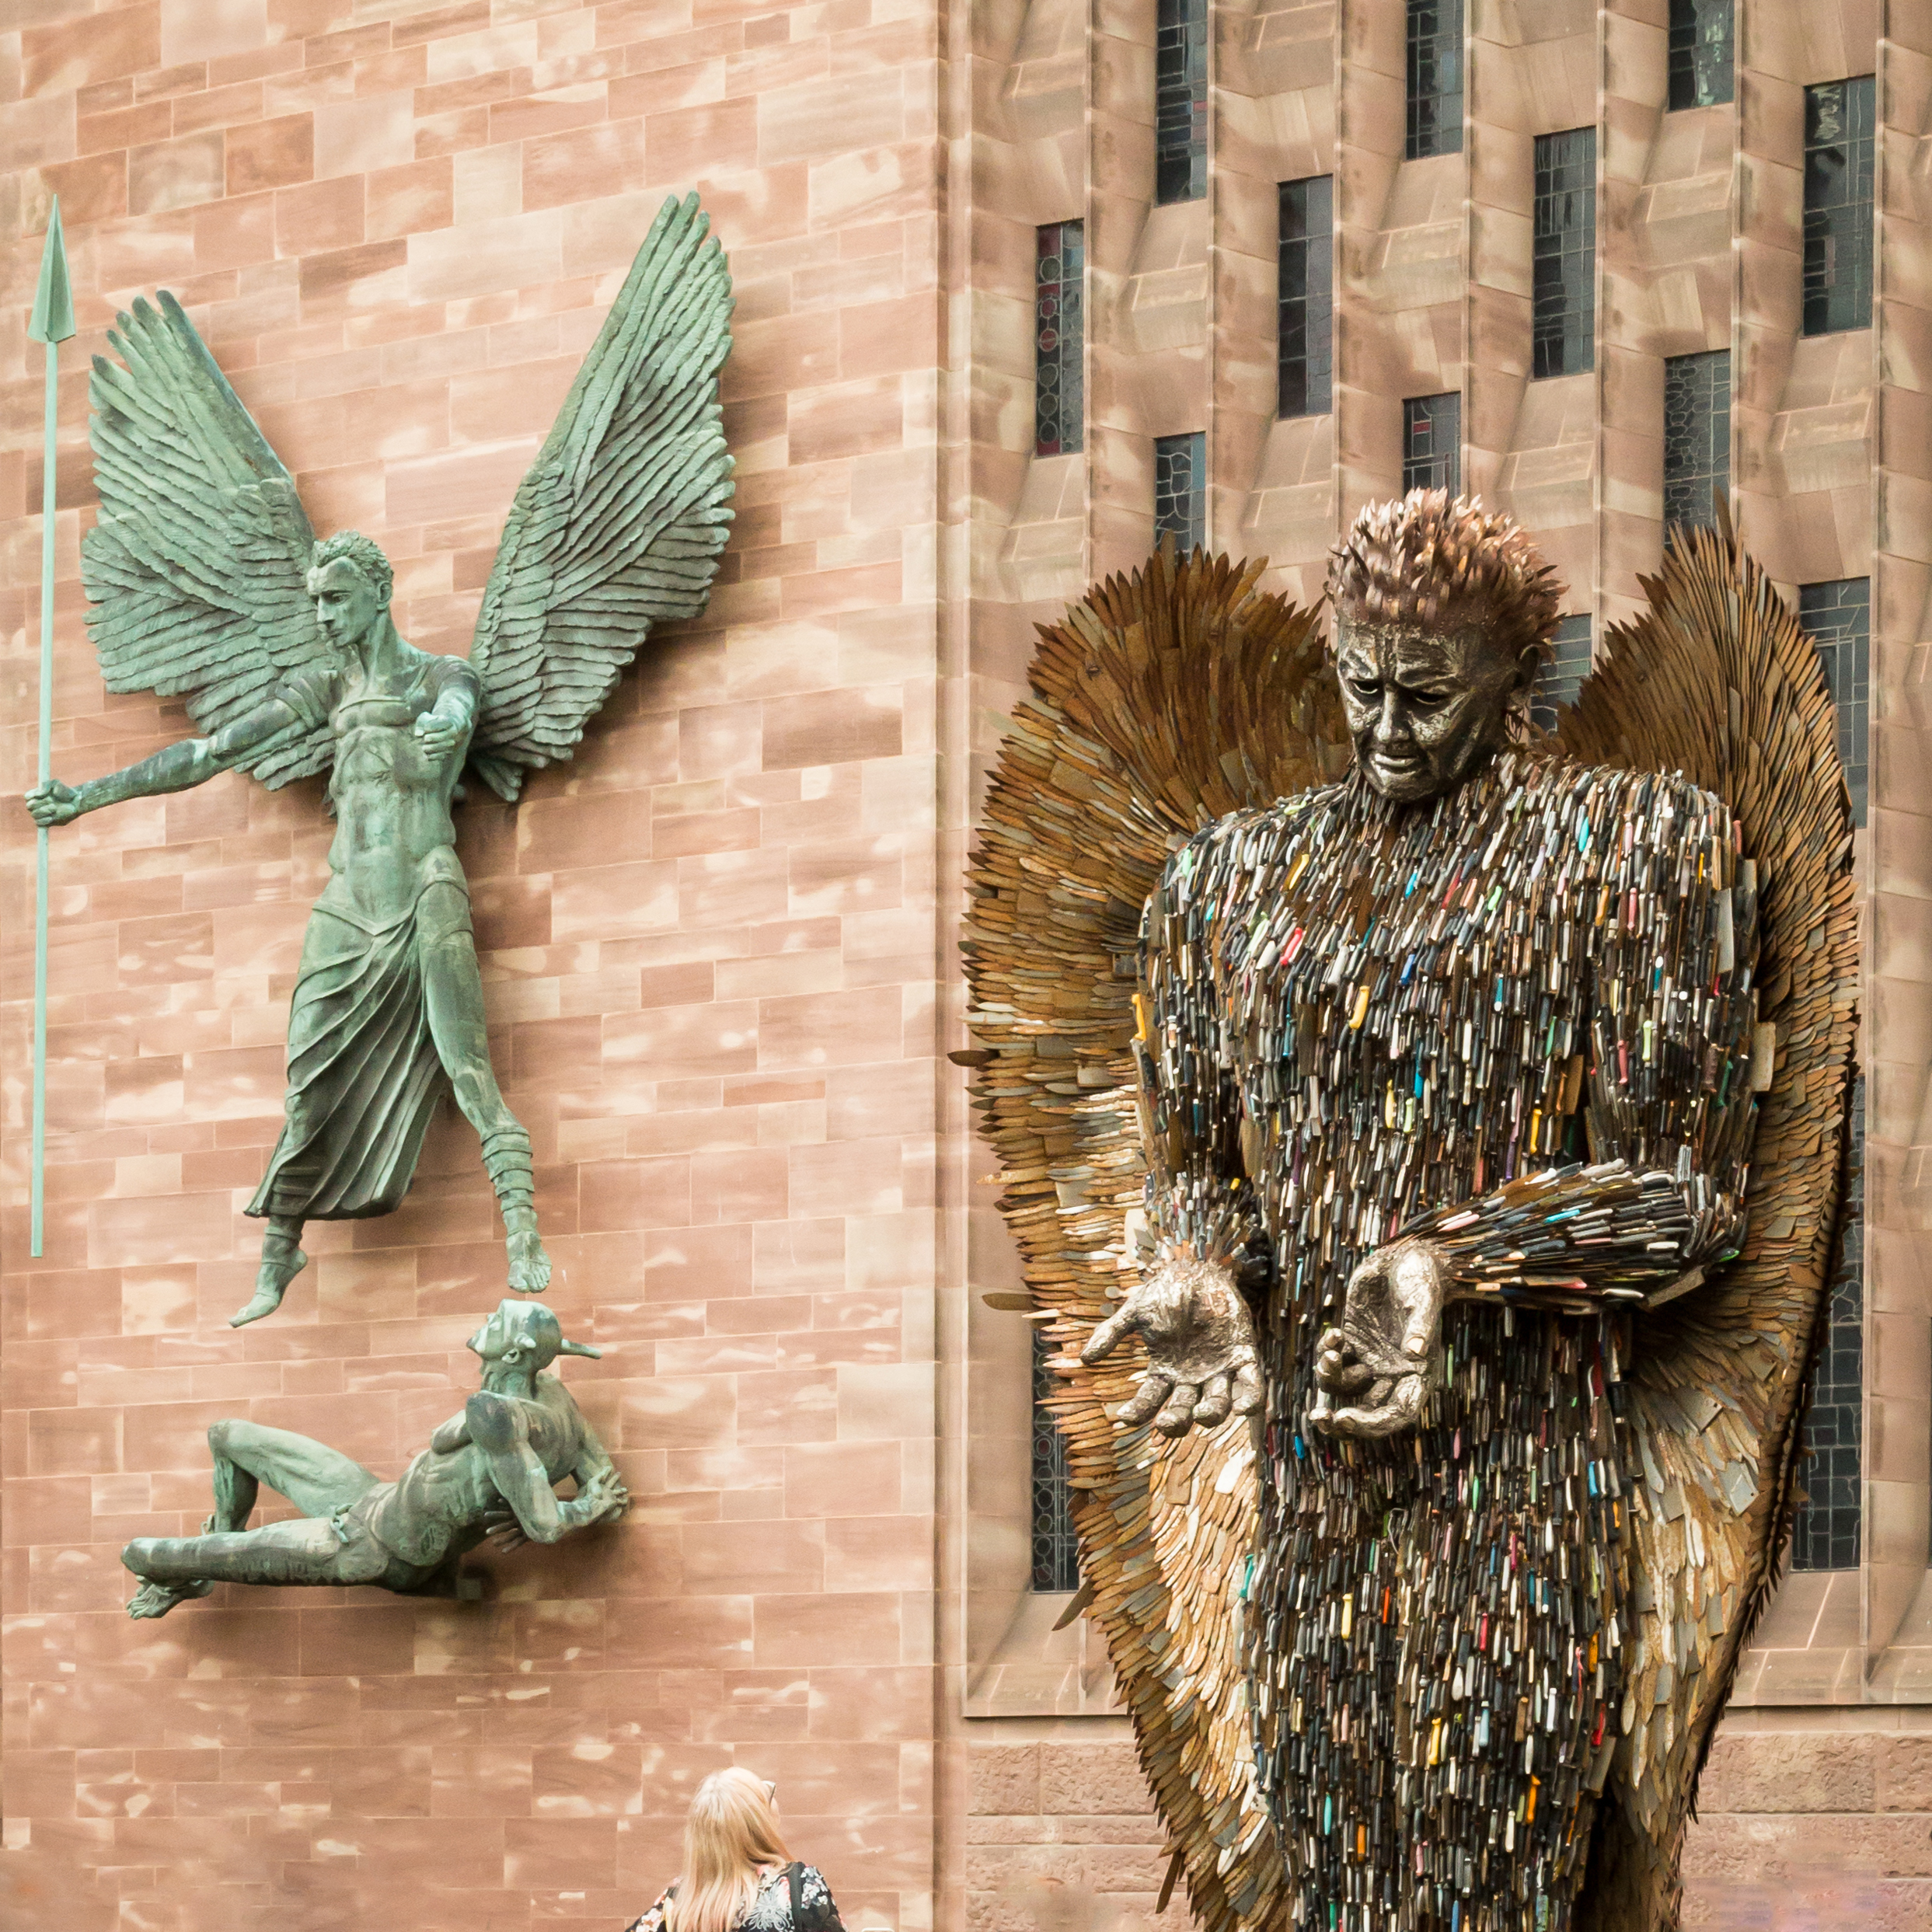 6 - Chris Baker - Knife Angel at Coventry Cathederal.jpg